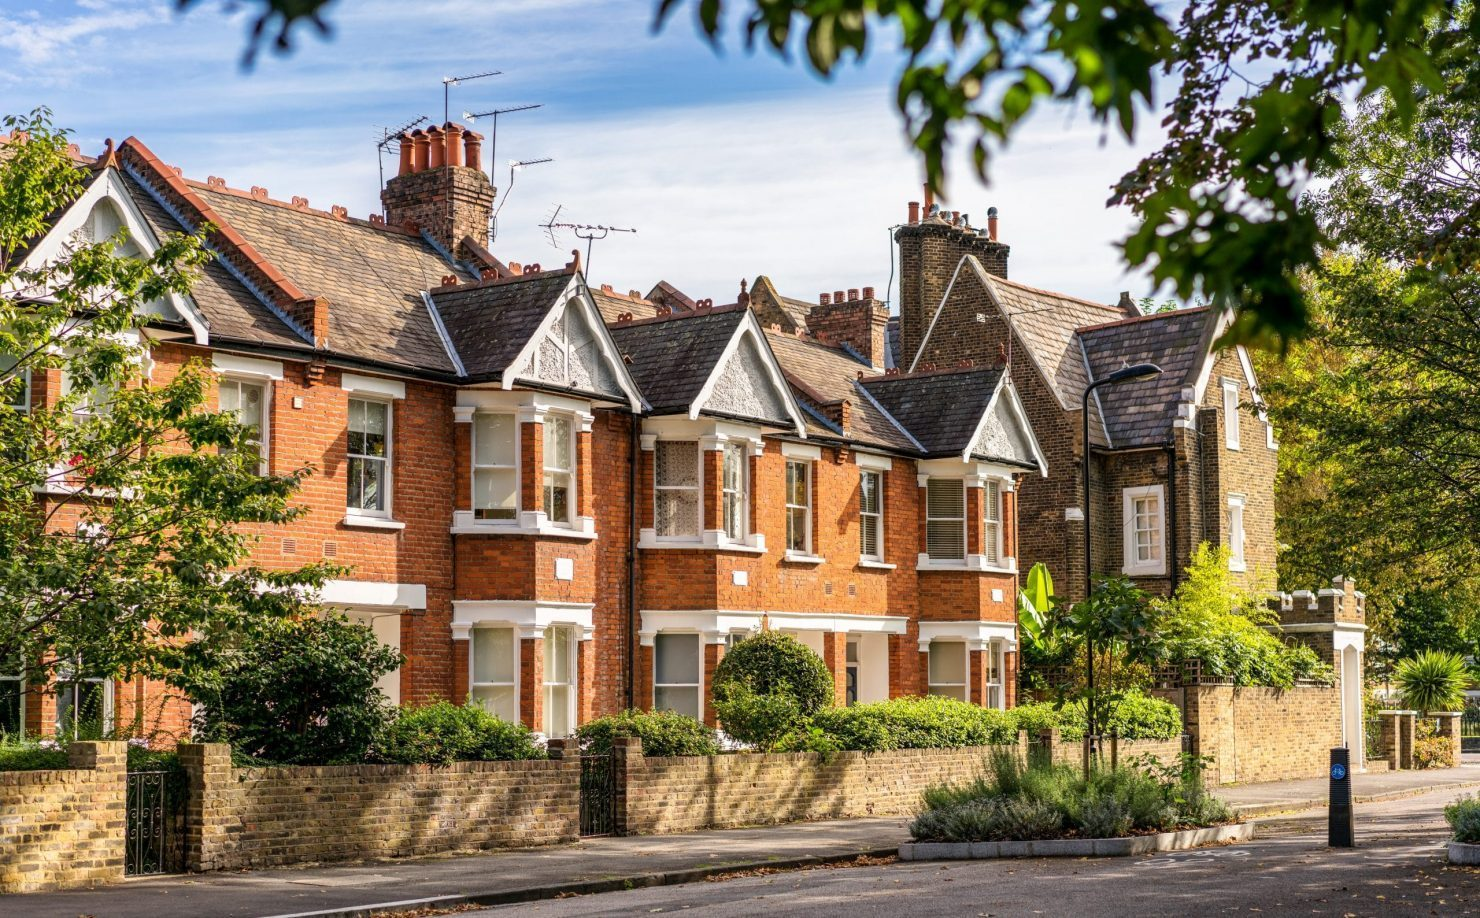 Traditional London terraced houses